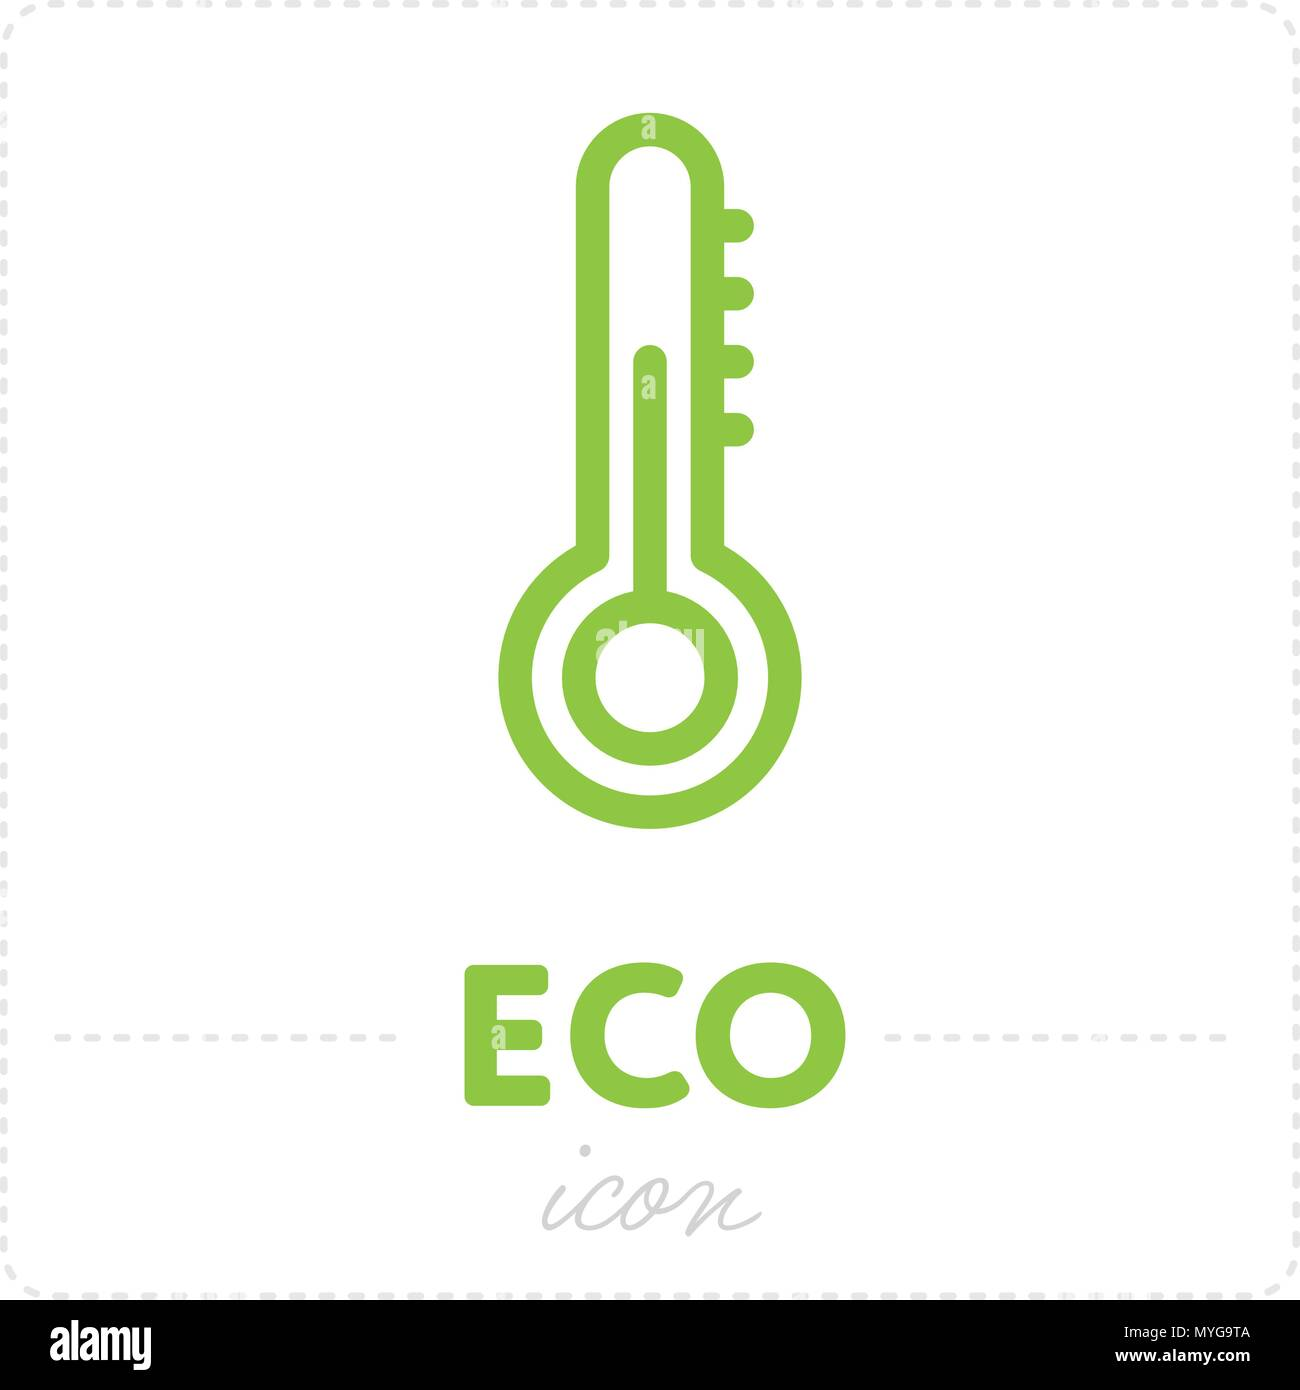 Temperature icon in green color - Stock Image